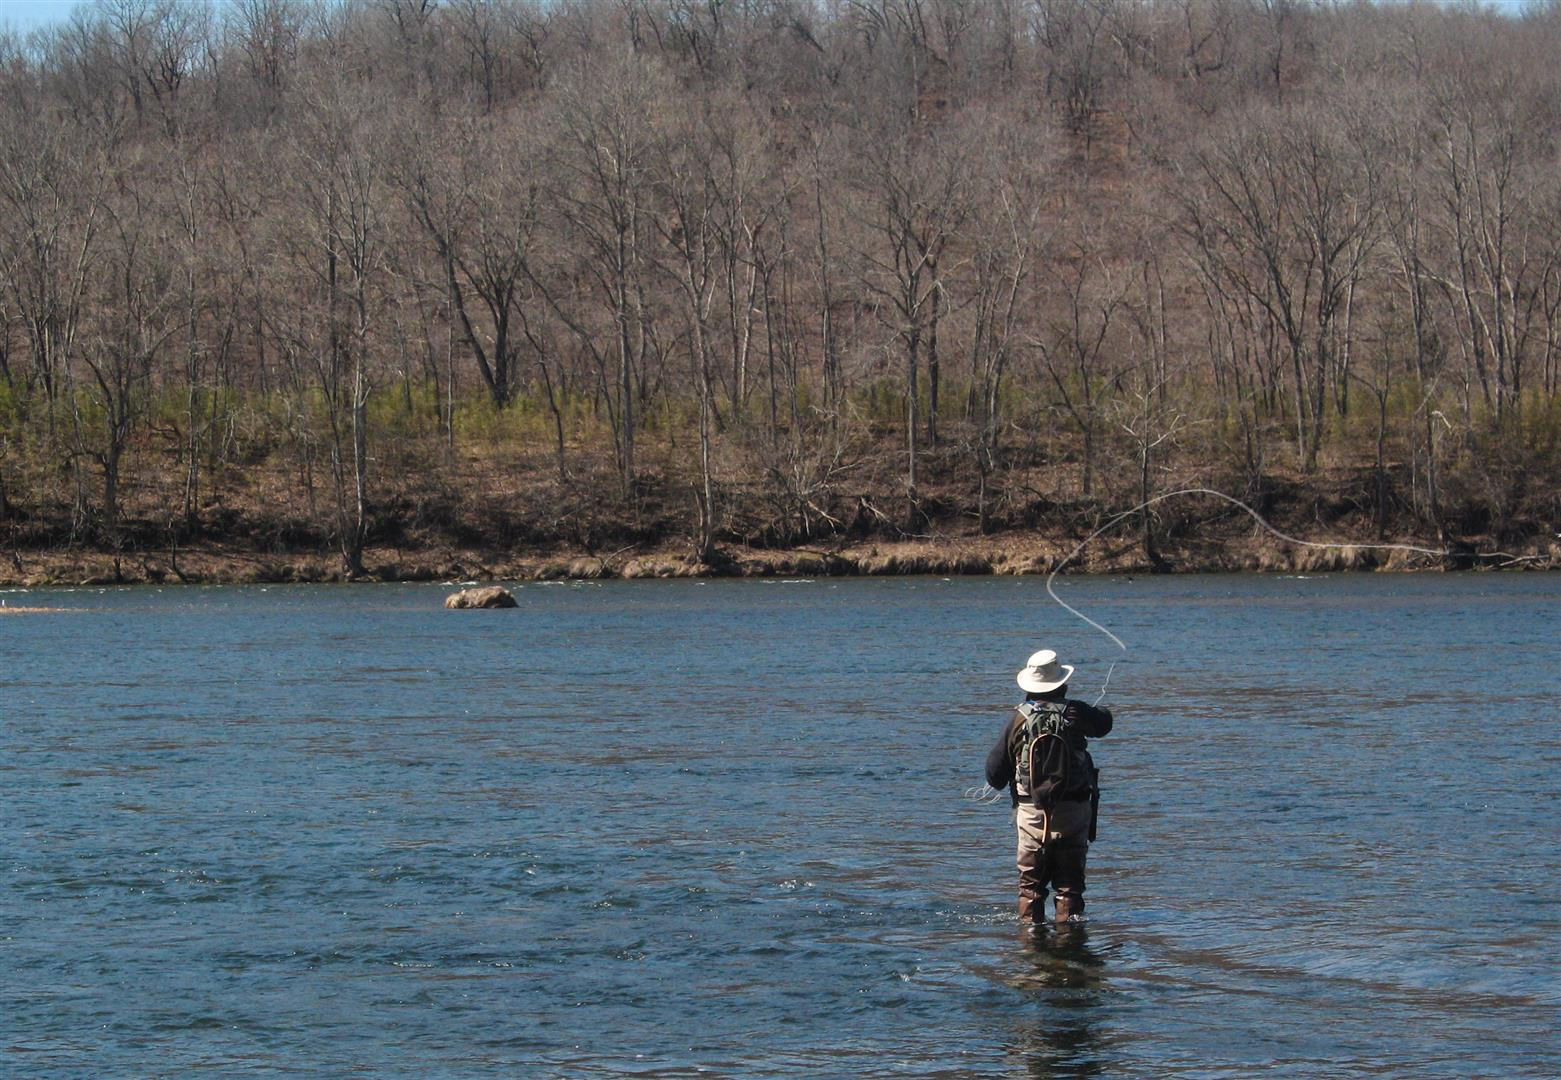 White river fishing report ozarkenglishman fly casting for White river fishing